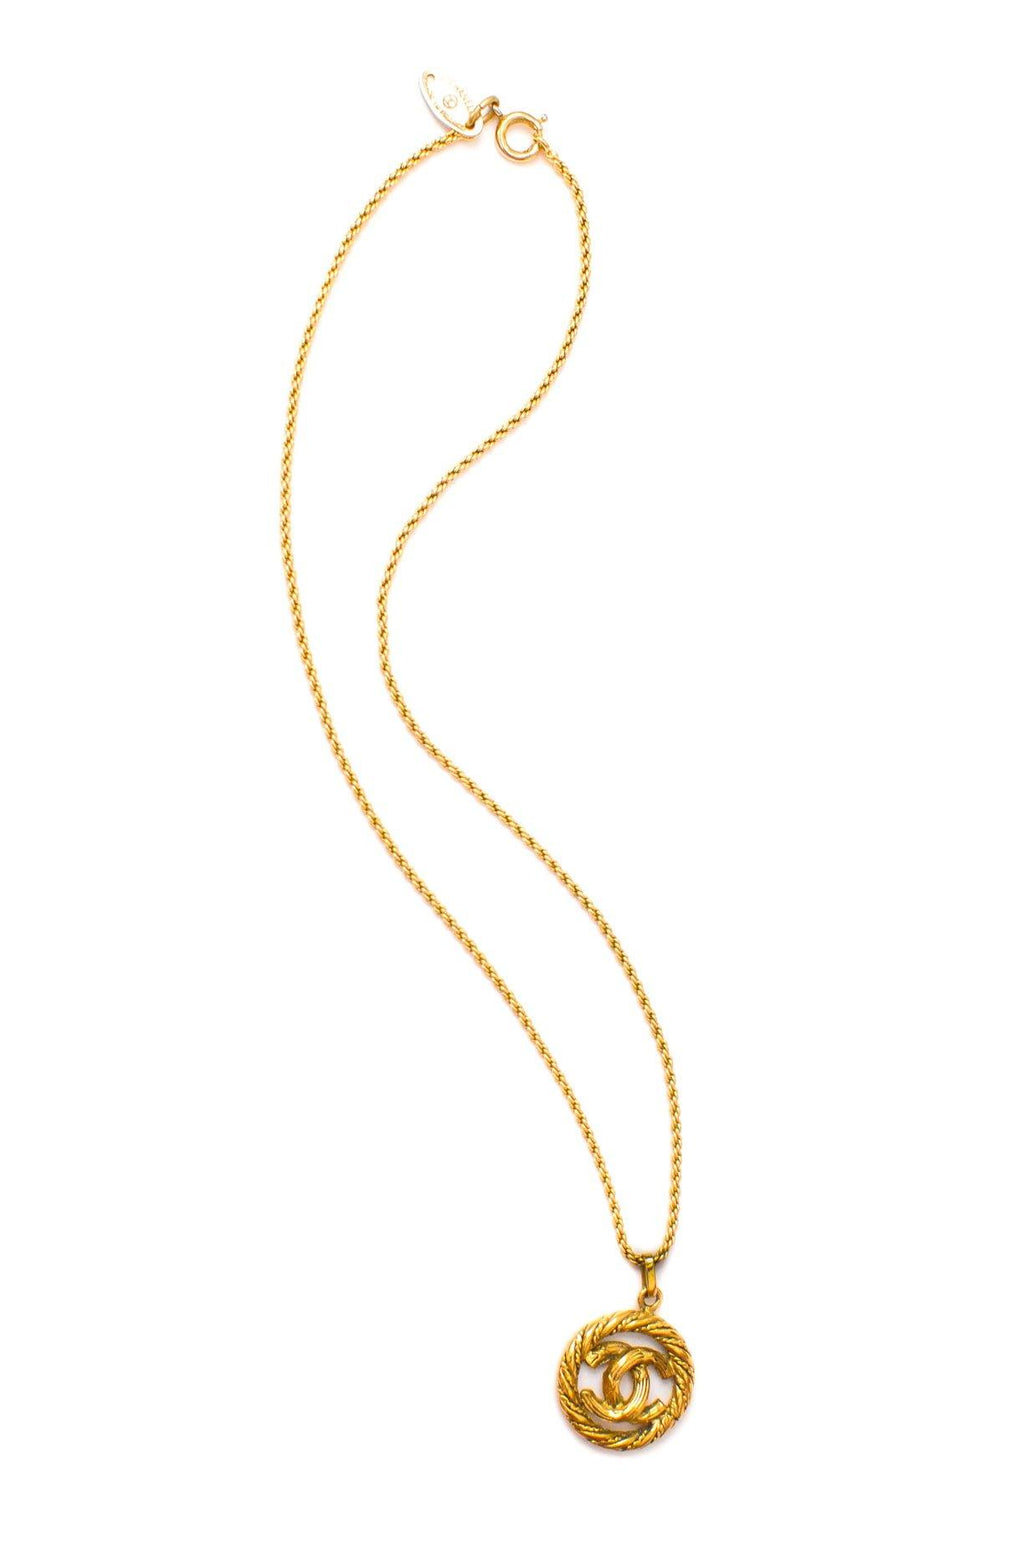 Chanel Dainty Necklace